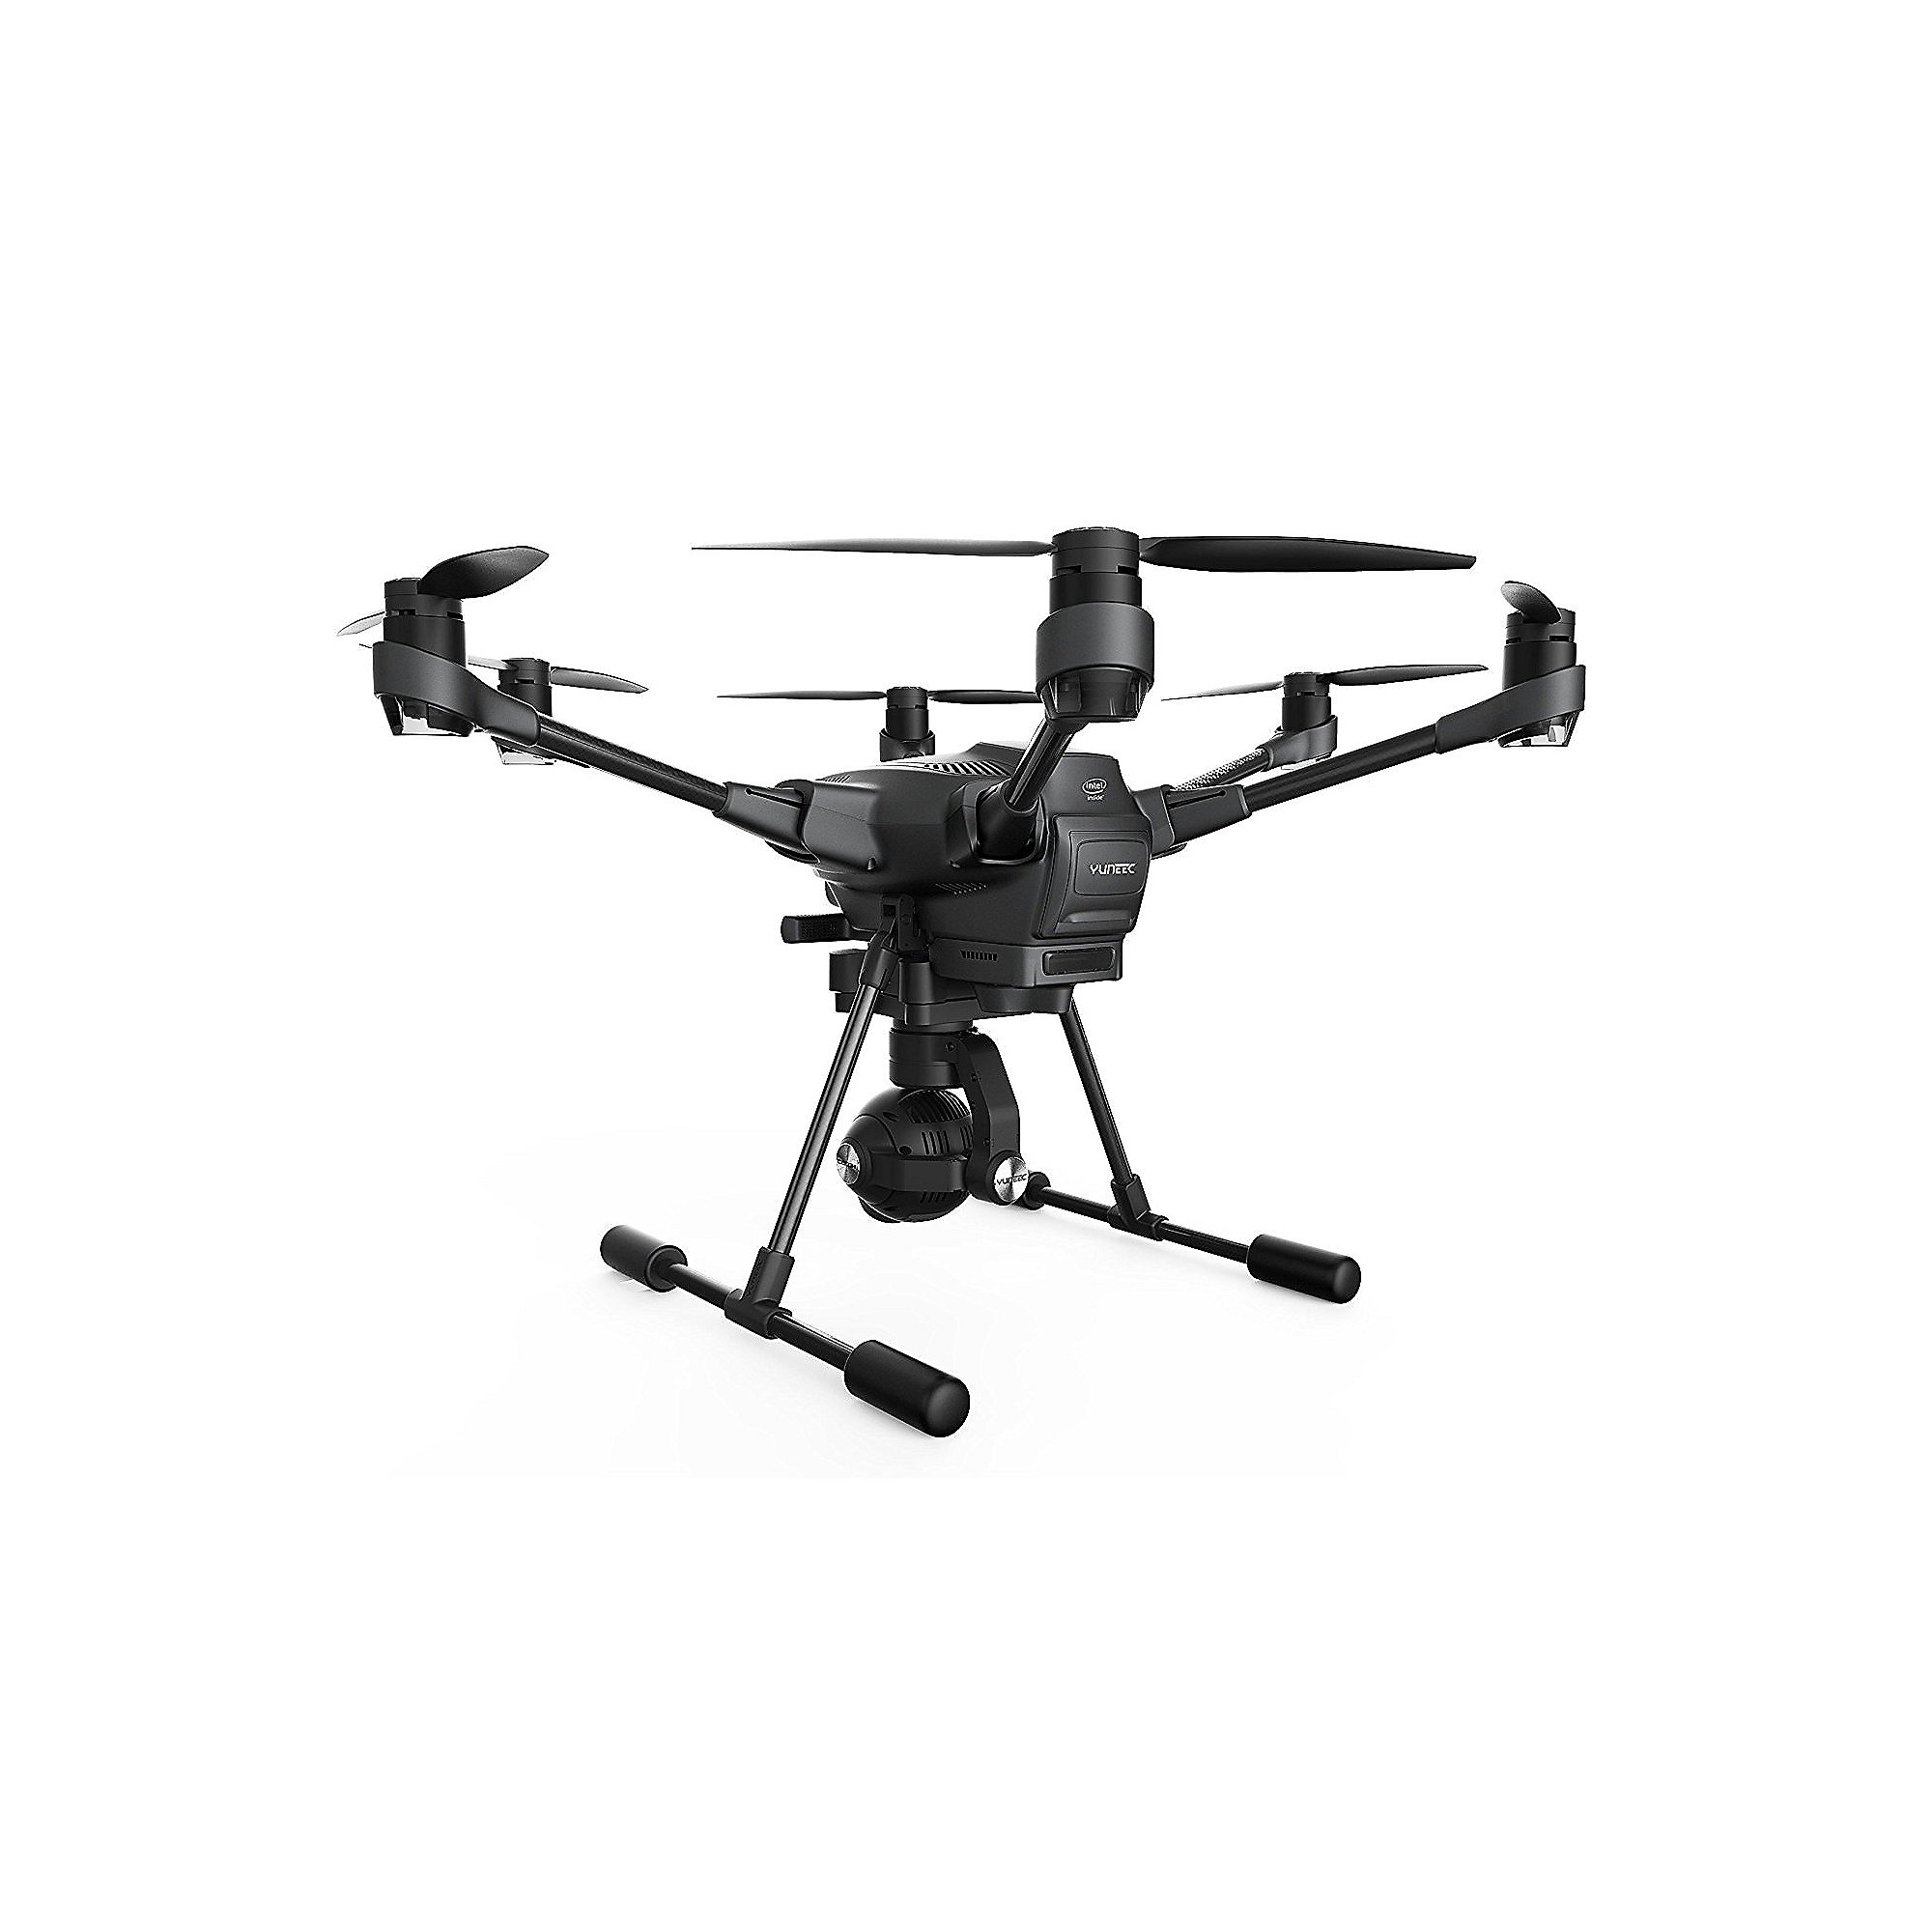 Yuneec Typhoon H Pro Intel Real Sense Hexacopter Flugdrohne